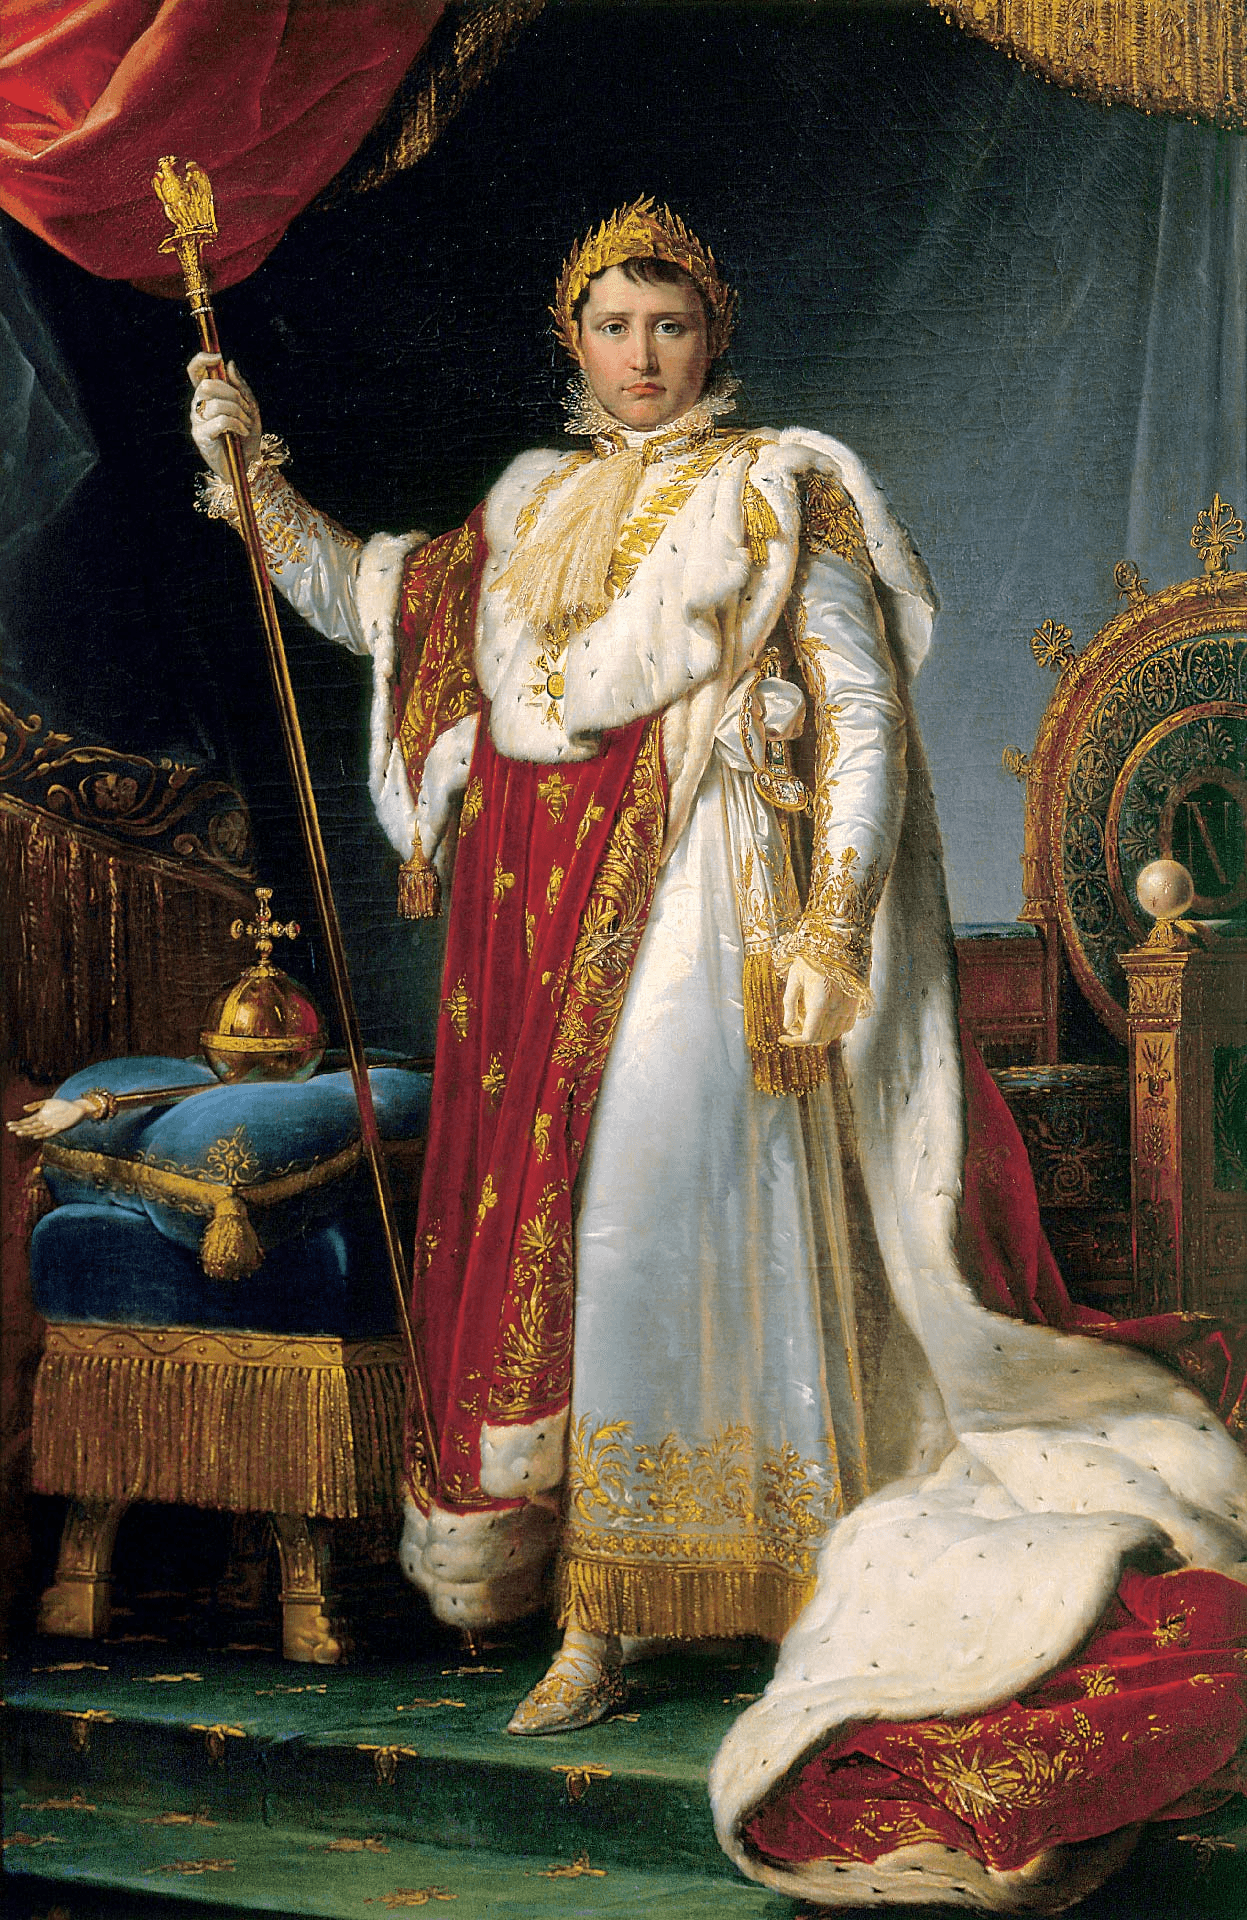 NAPOLEON: ART AND COURT LIFE IN THE IMPERIAL PALACE